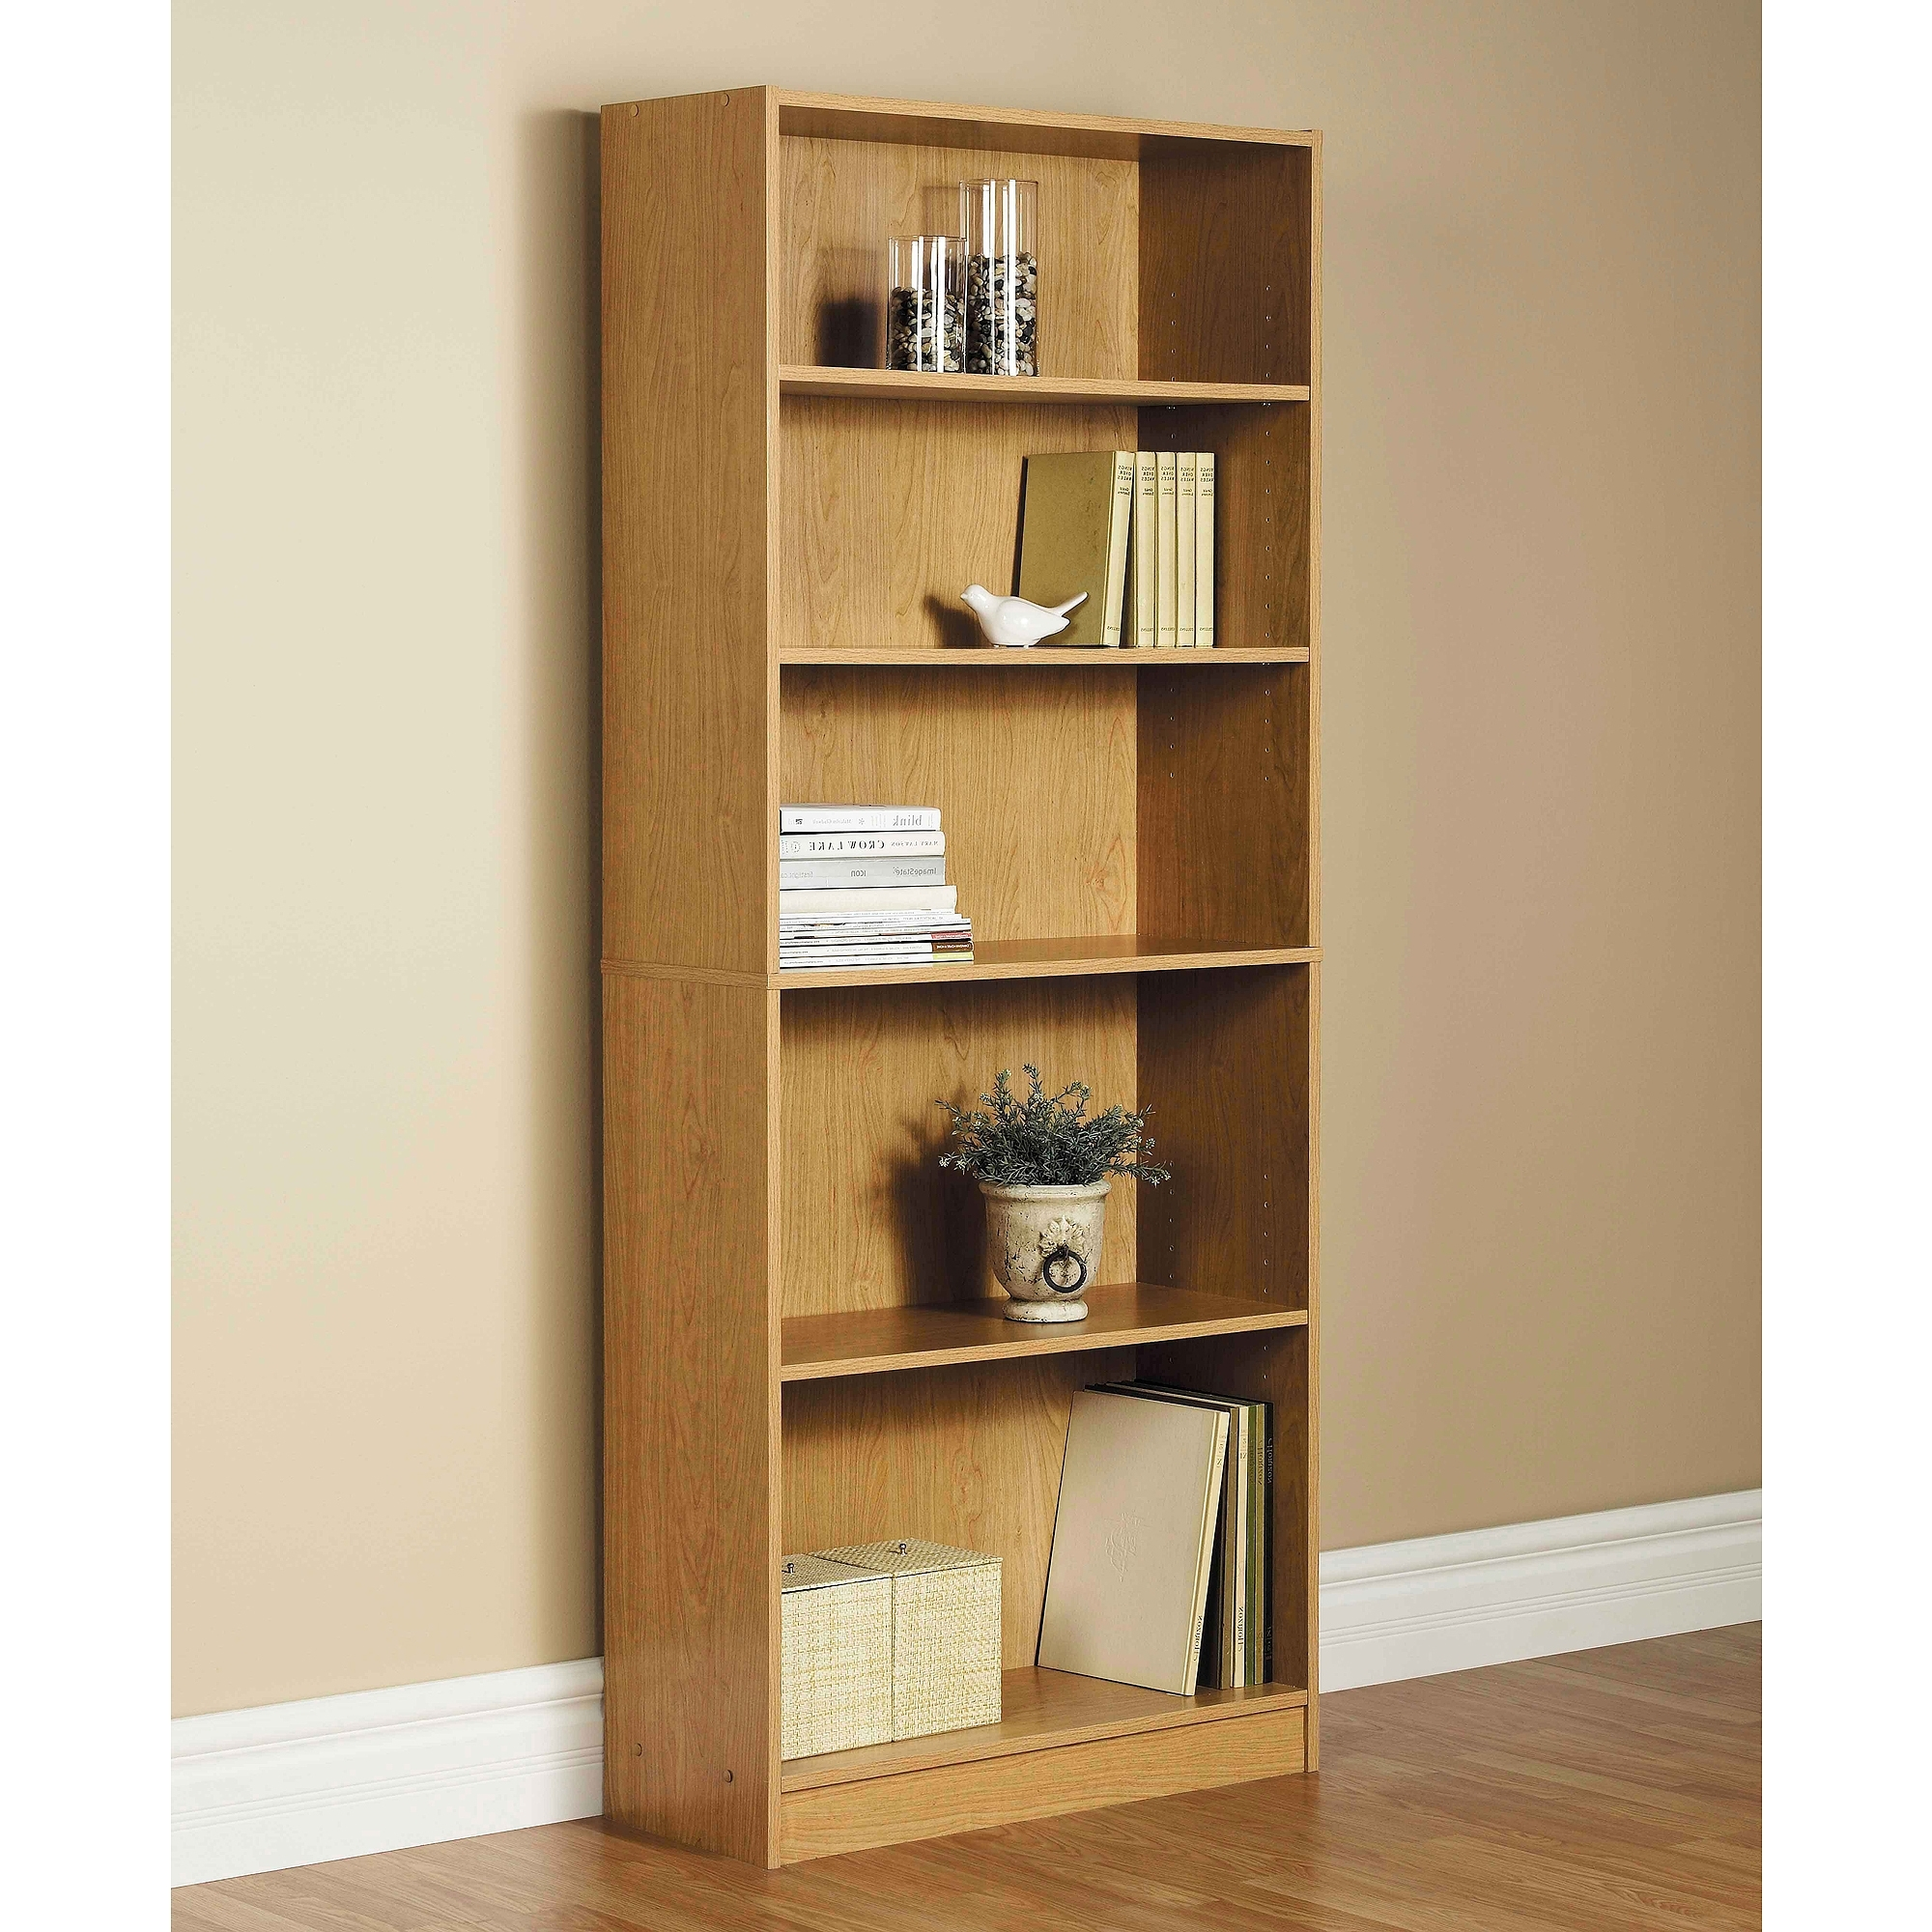 24 Inch Wide Bookcases With Well Known Bookcases – Walmart (View 2 of 15)